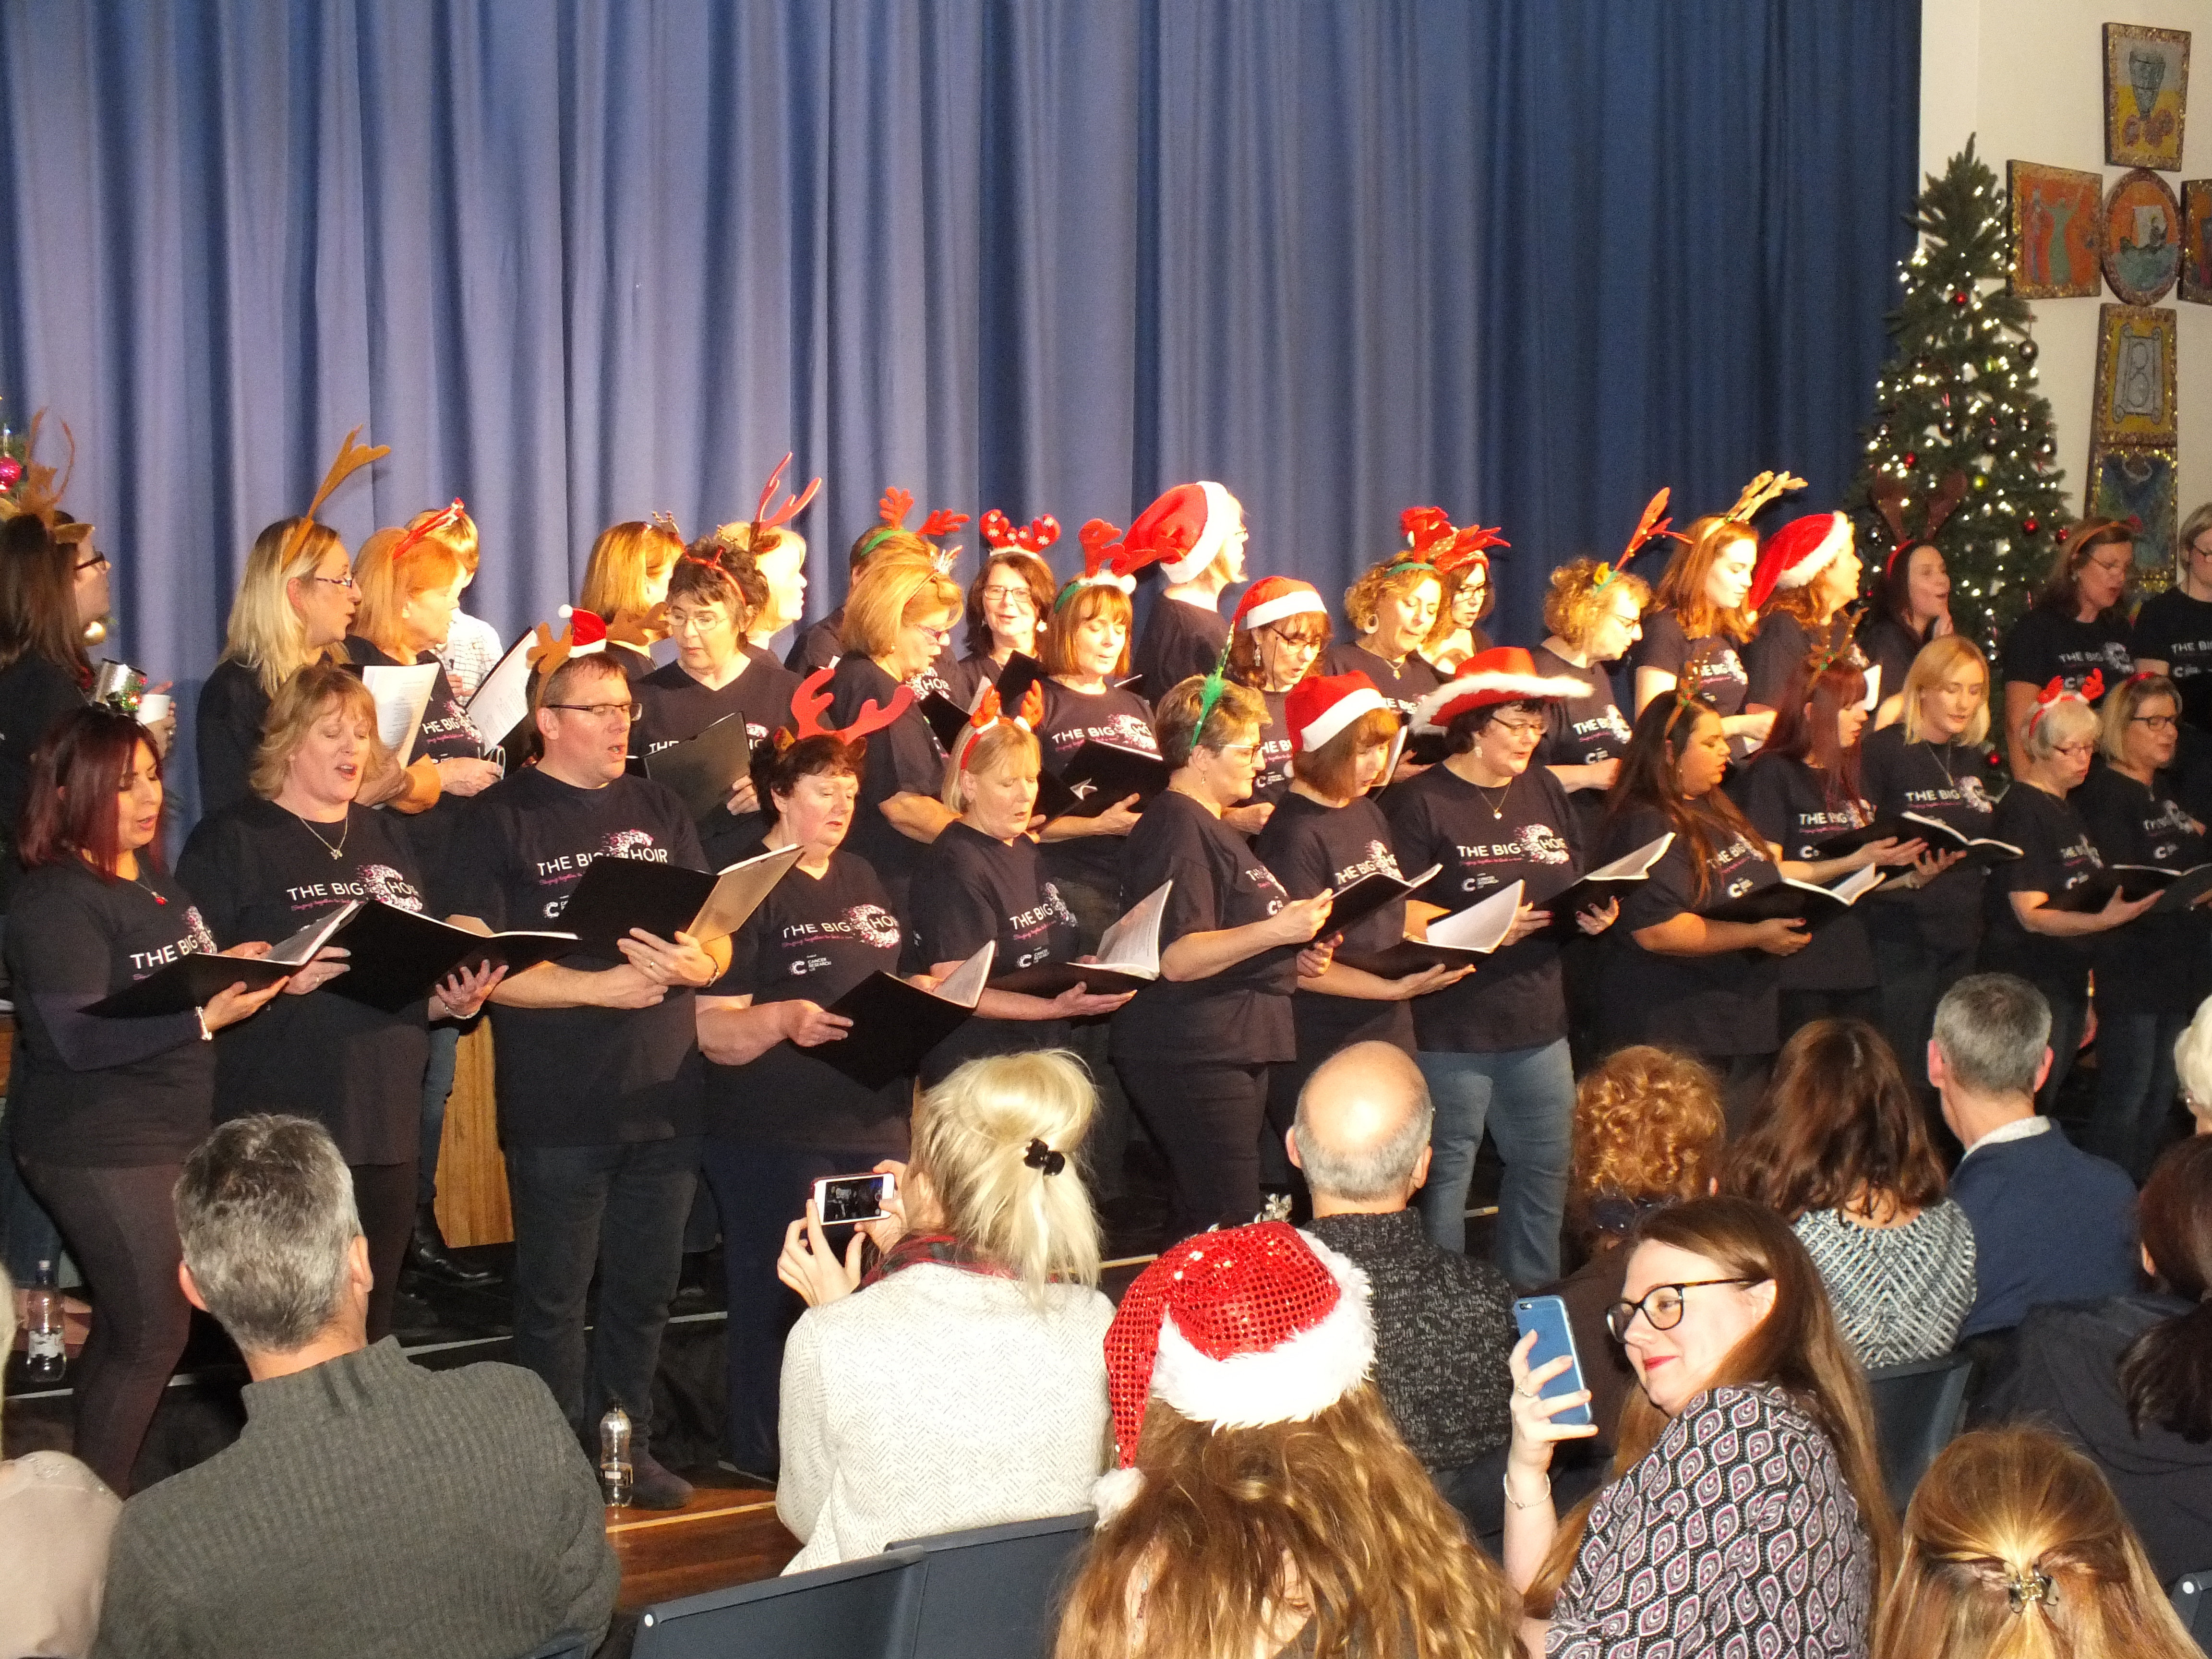 THE BIG CHOIR CHRISTMAS PERFORMANCE